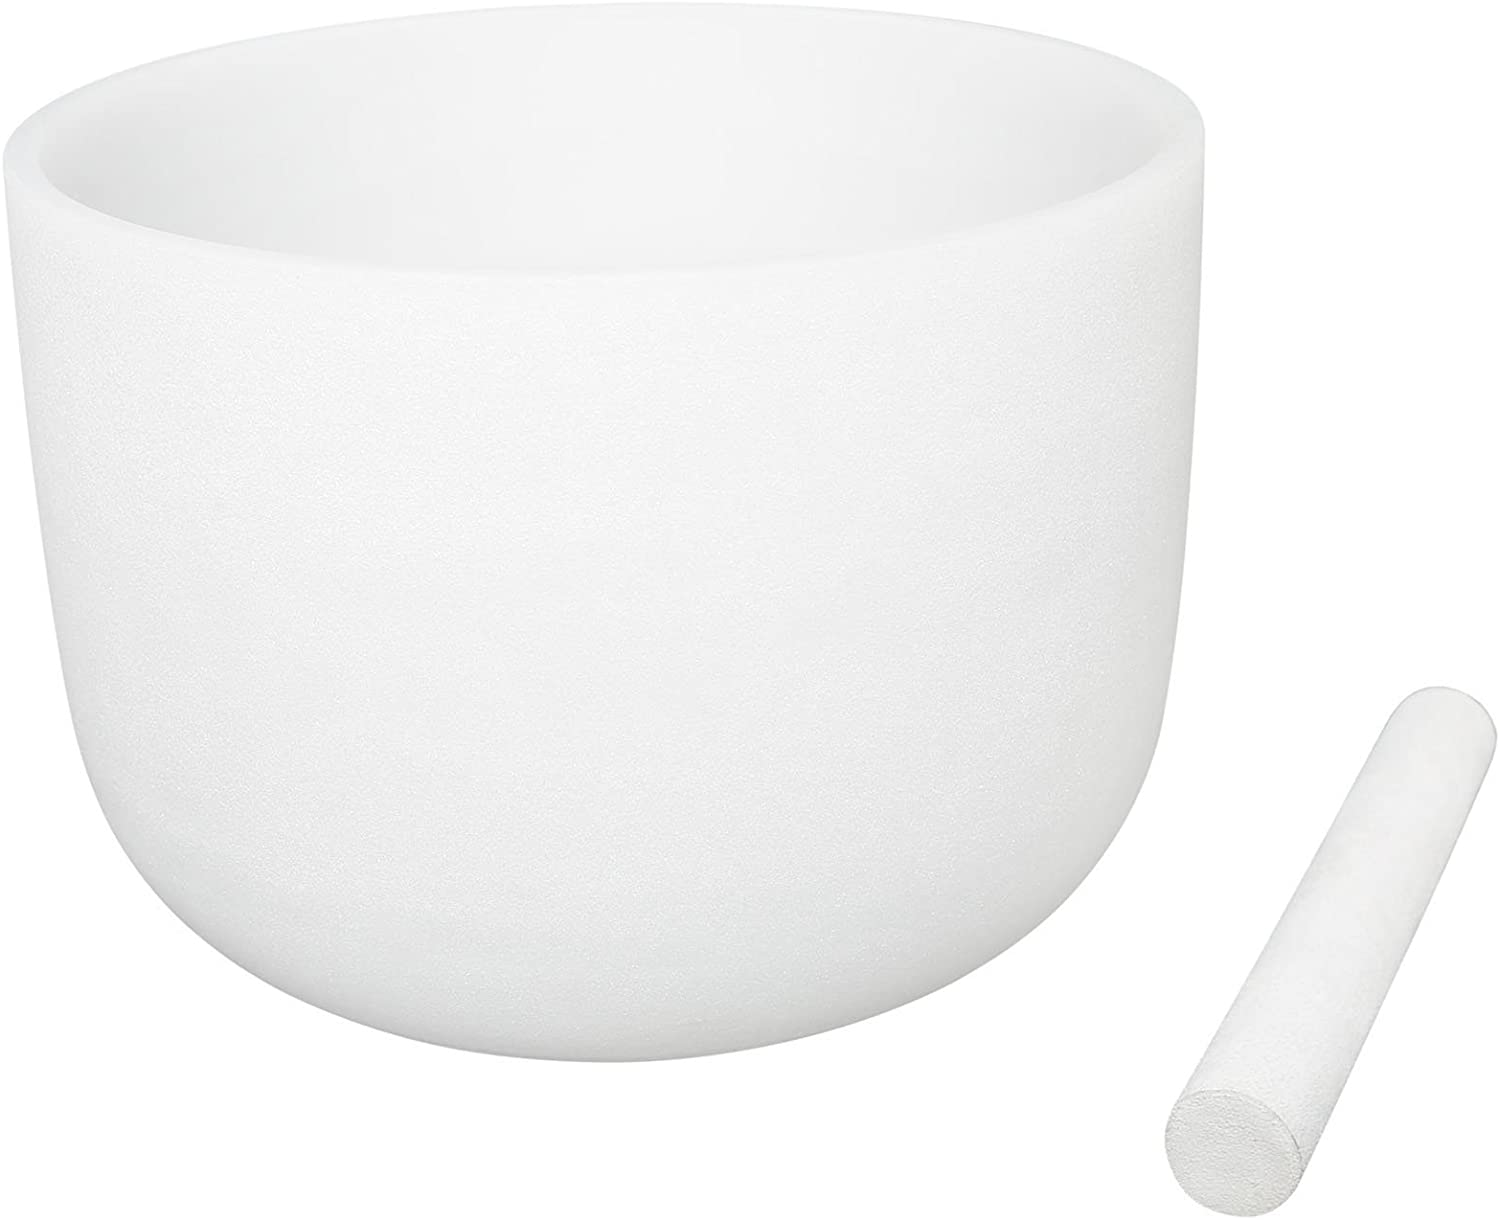 White Color Frosted Crystal Singing Bowl Perfect Pitch Note C 432Hz Root Chakra 8 inch Best and Highest Quality Sound & Material Suede Mallet Included